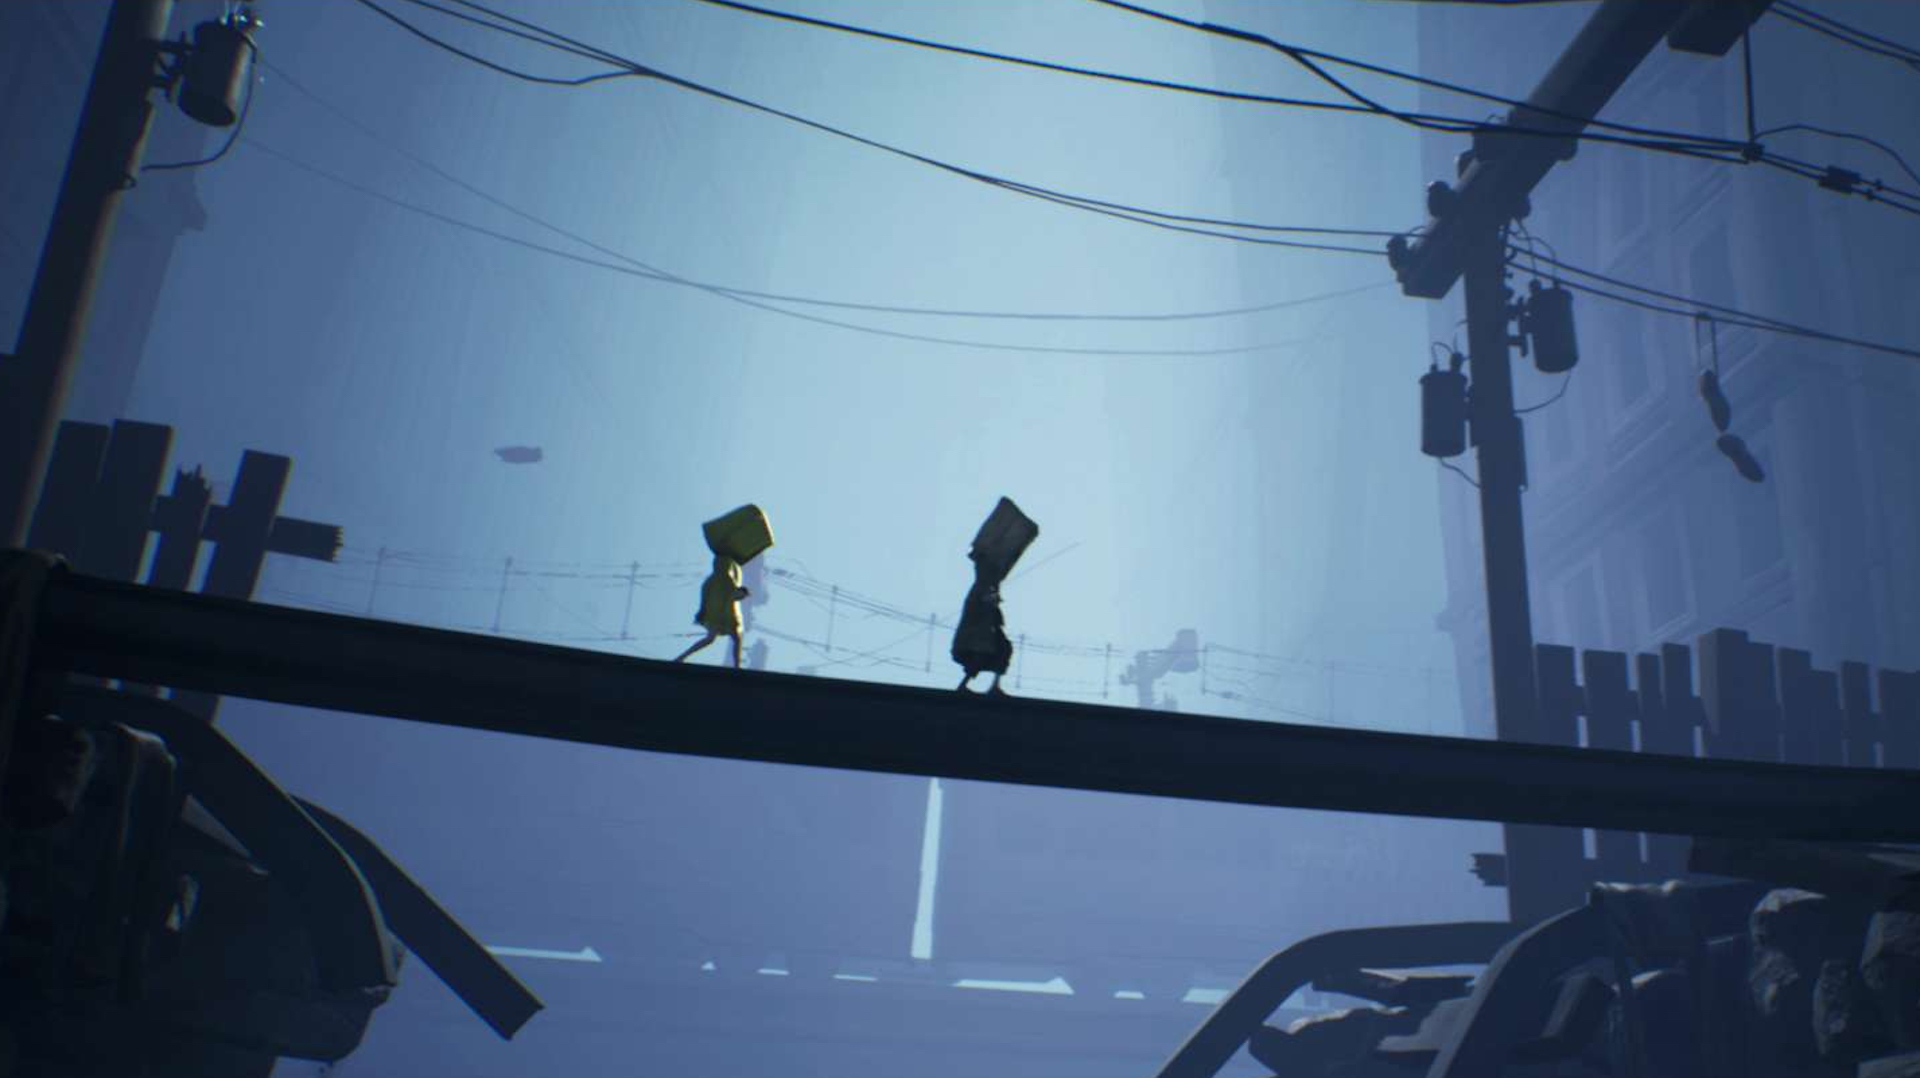 Little Nightmares 2 Gameplay Features Co-op Puzzle Solving, The HunterRavi SinhaVideo Game News, Reviews, Walkthroughs And Guides | GamingBolt